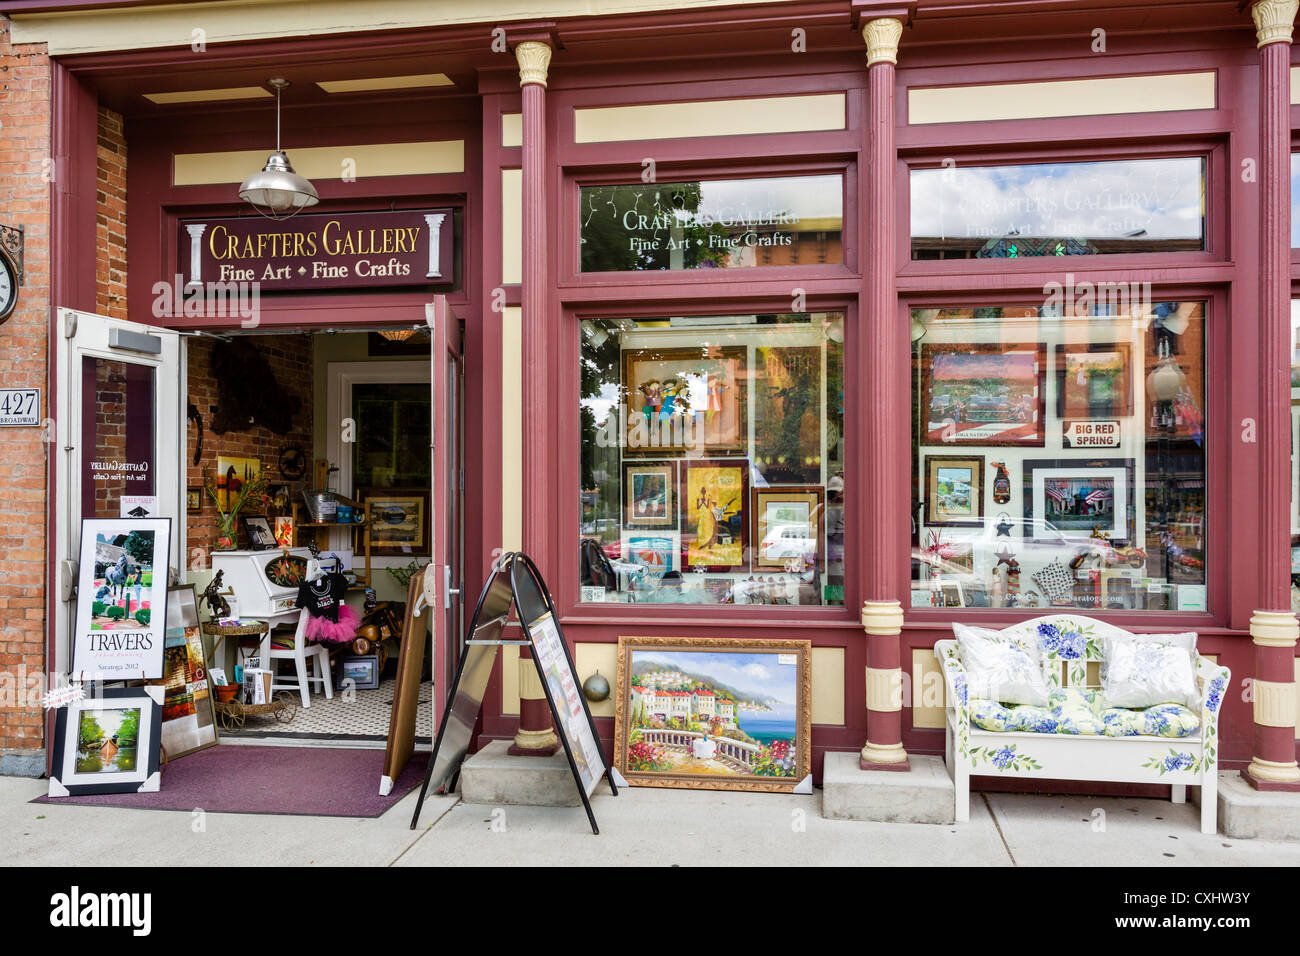 Art and crafts store on Broadway in downtown Saratoga Springs, New York State, USA - Stock Image